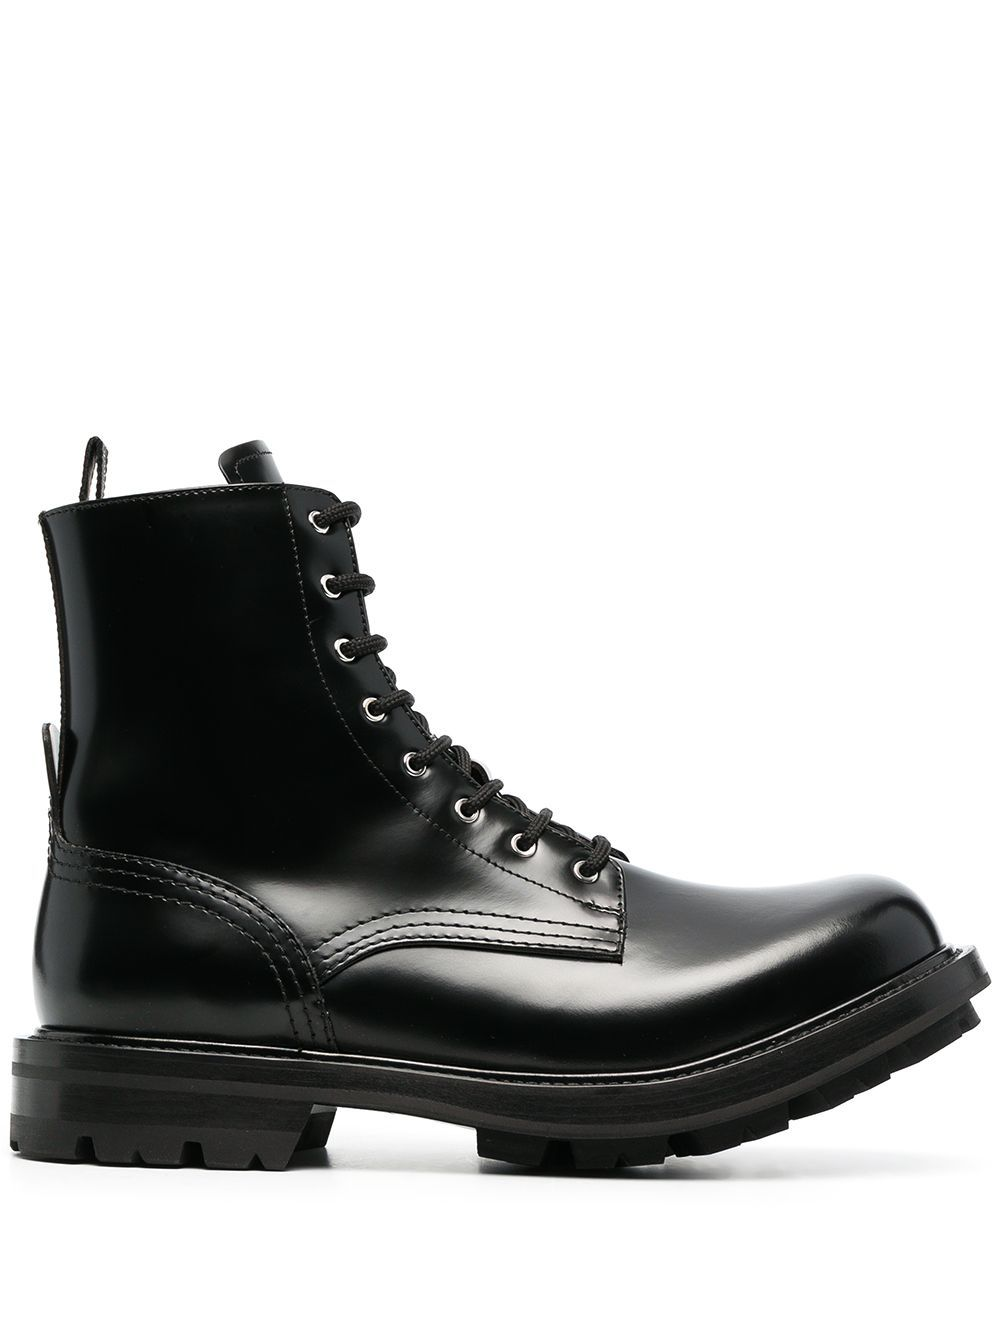 Alexander McQueen Lace Up Ankle Boots Black